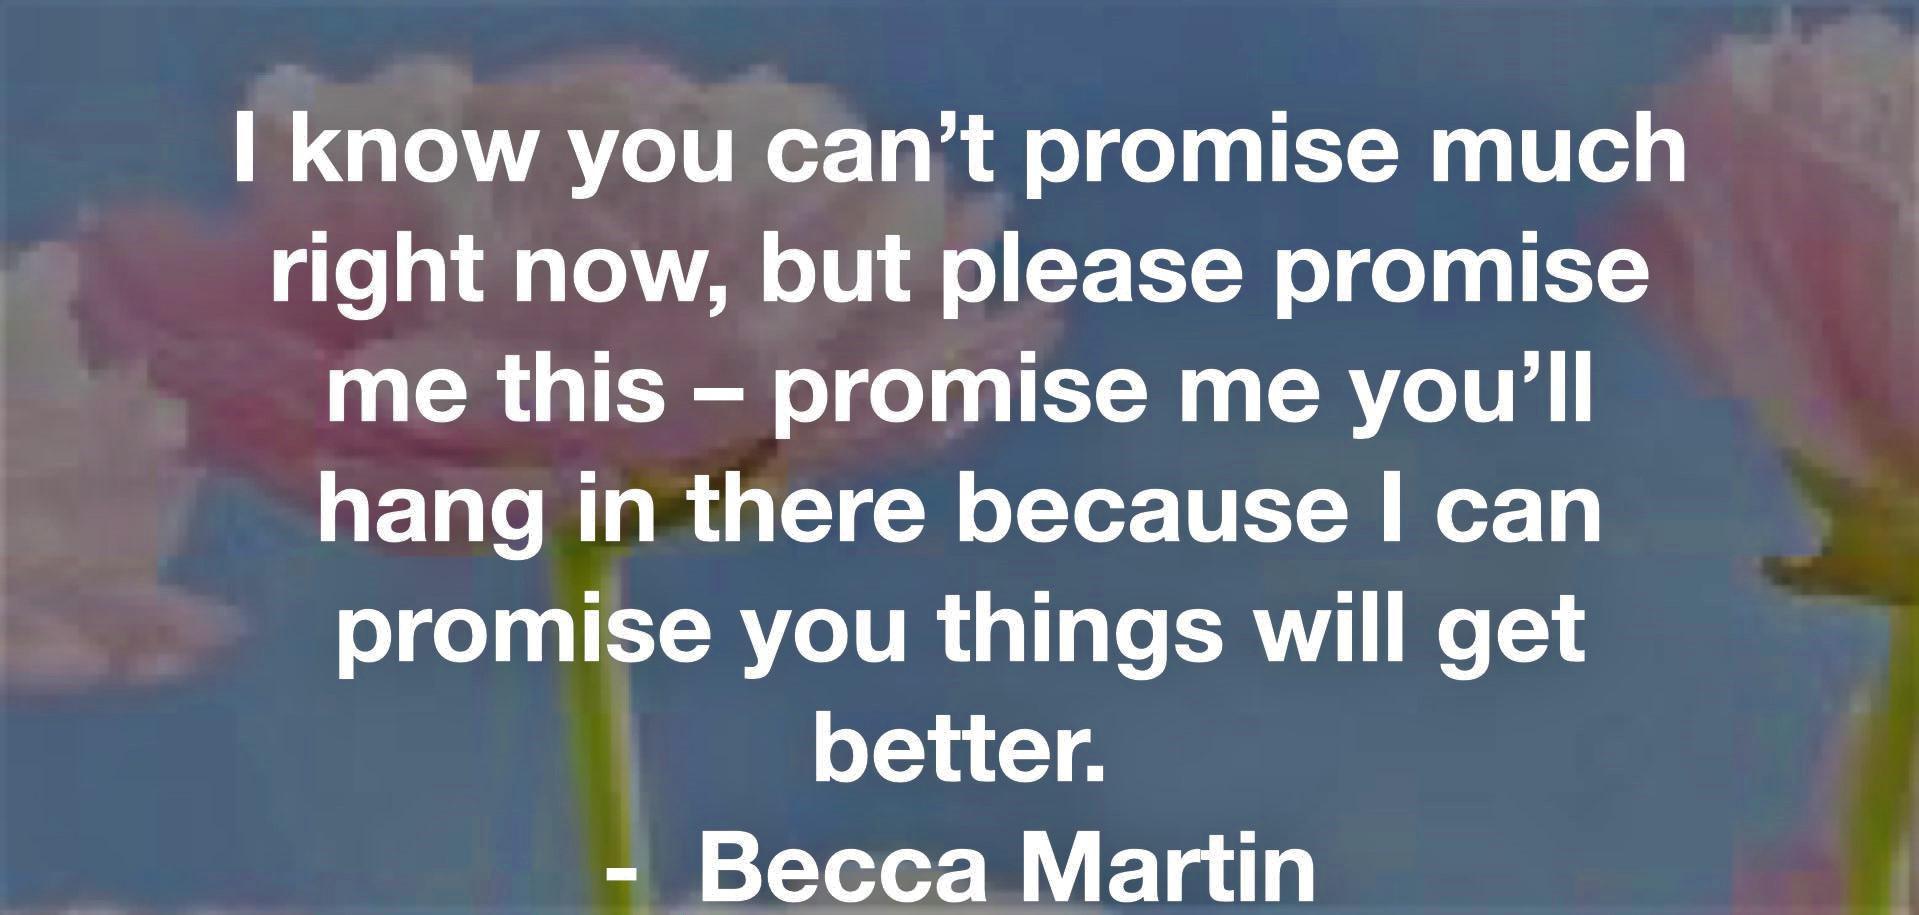 """[Image] """"I know you can't promise much right now, but please promise me this – promise me you'll hang in there because I can promise you things will get better."""" ~ Becca Martin"""